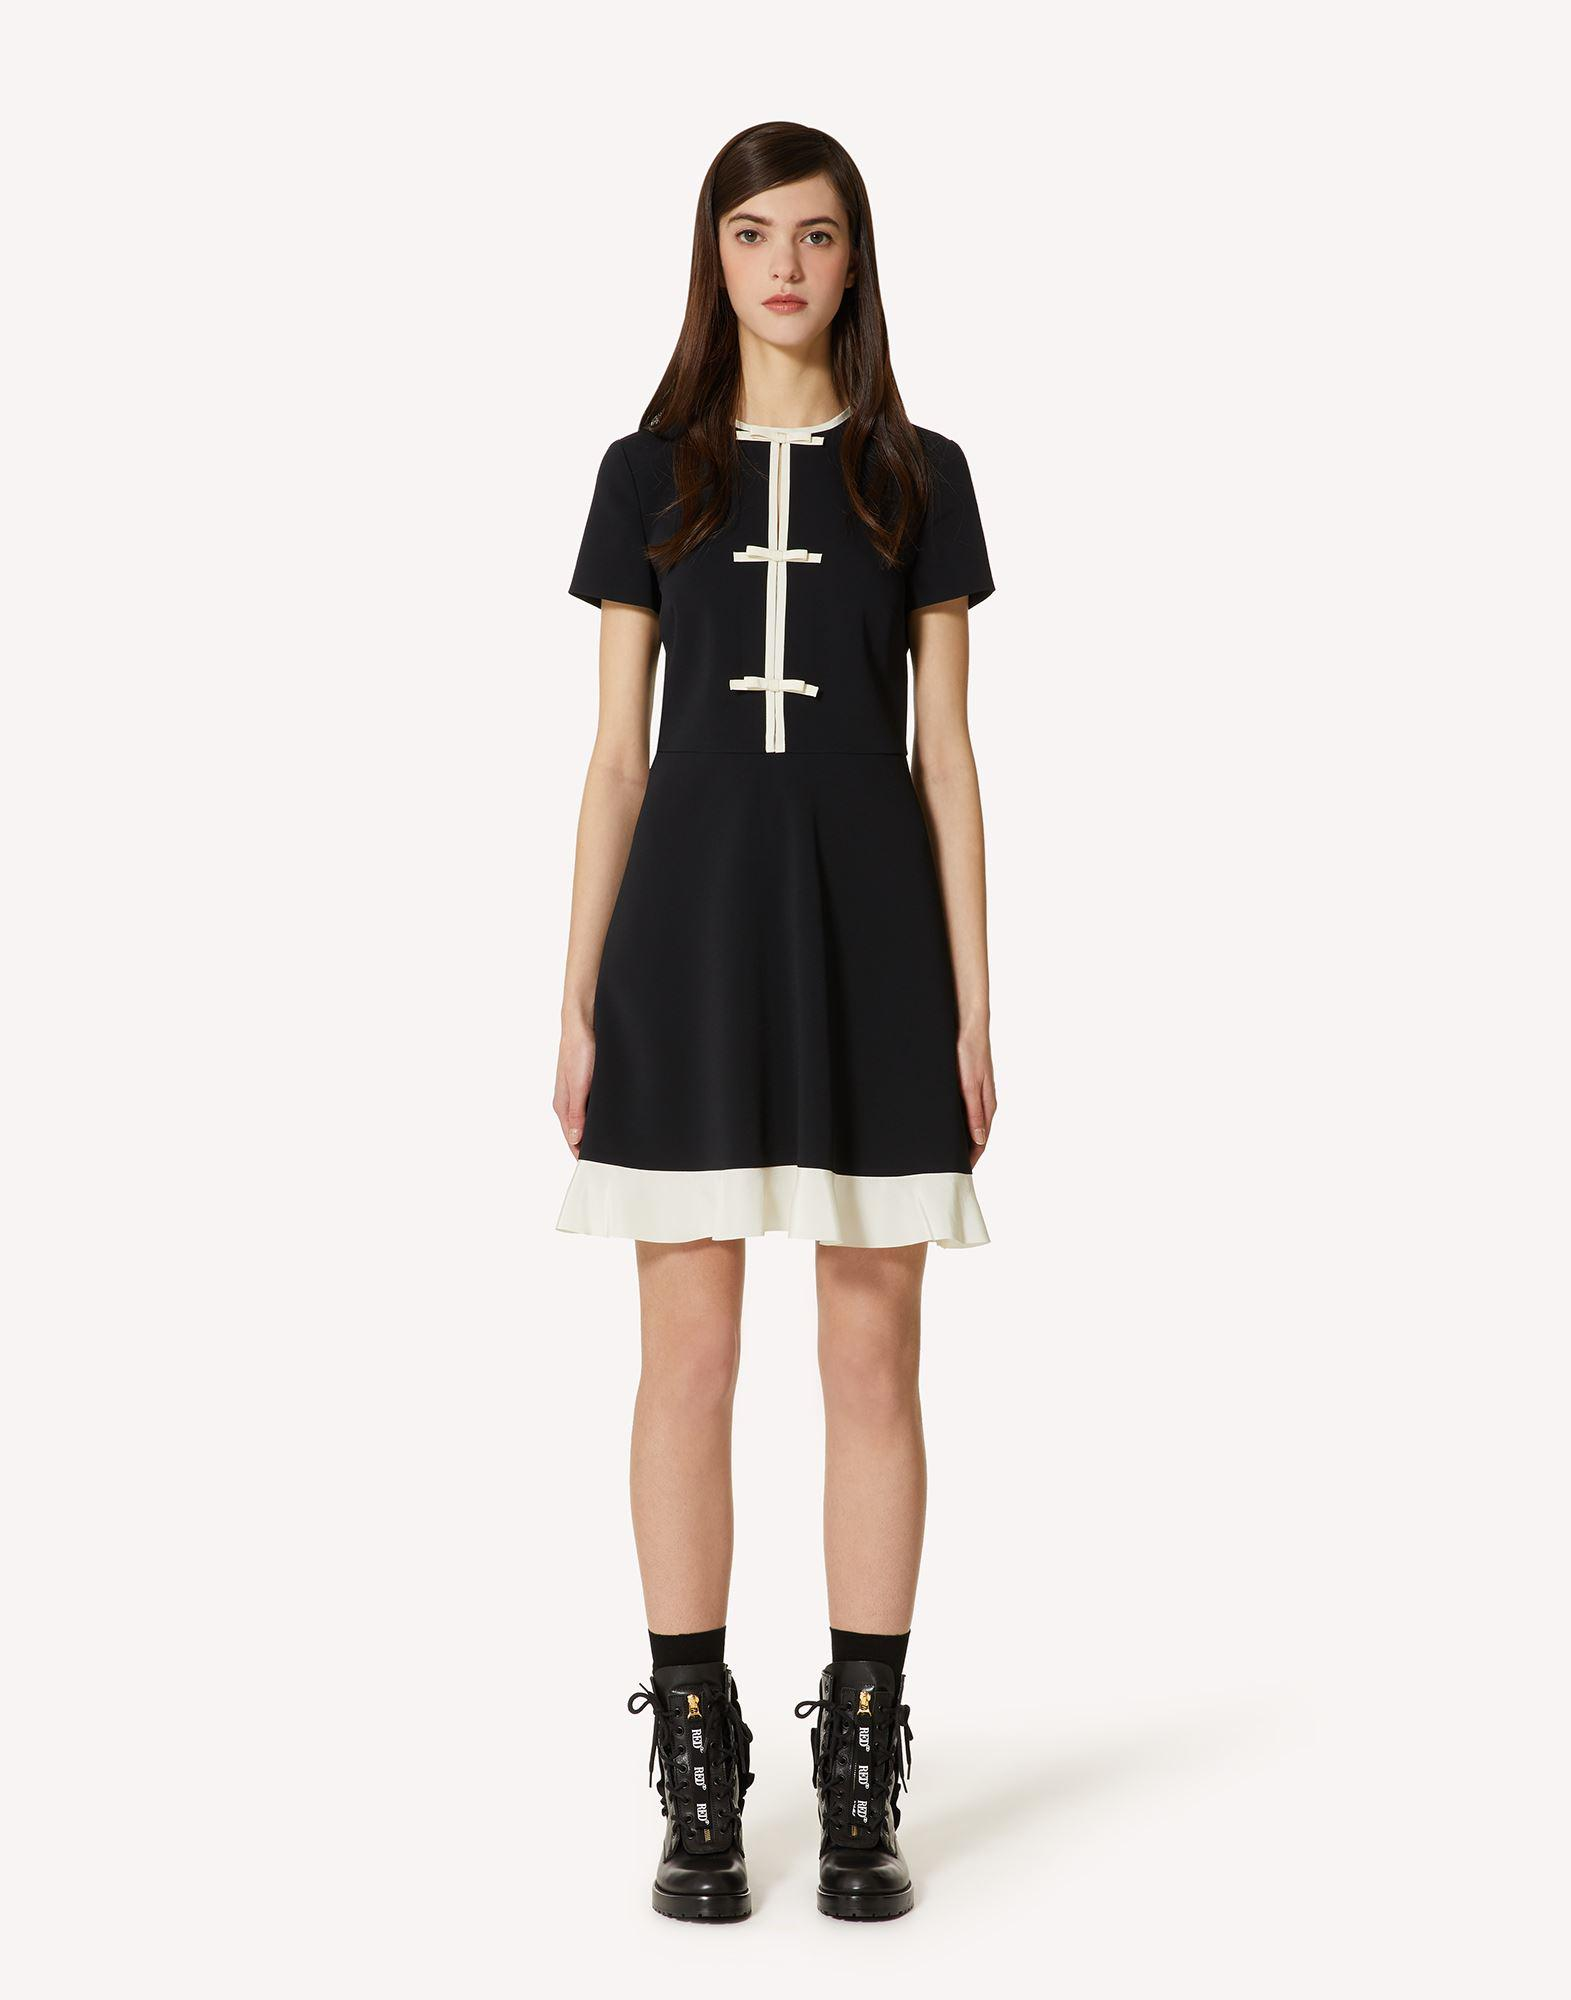 STRETCH FRISOTTINE DRESS WITH BOW DETAILS